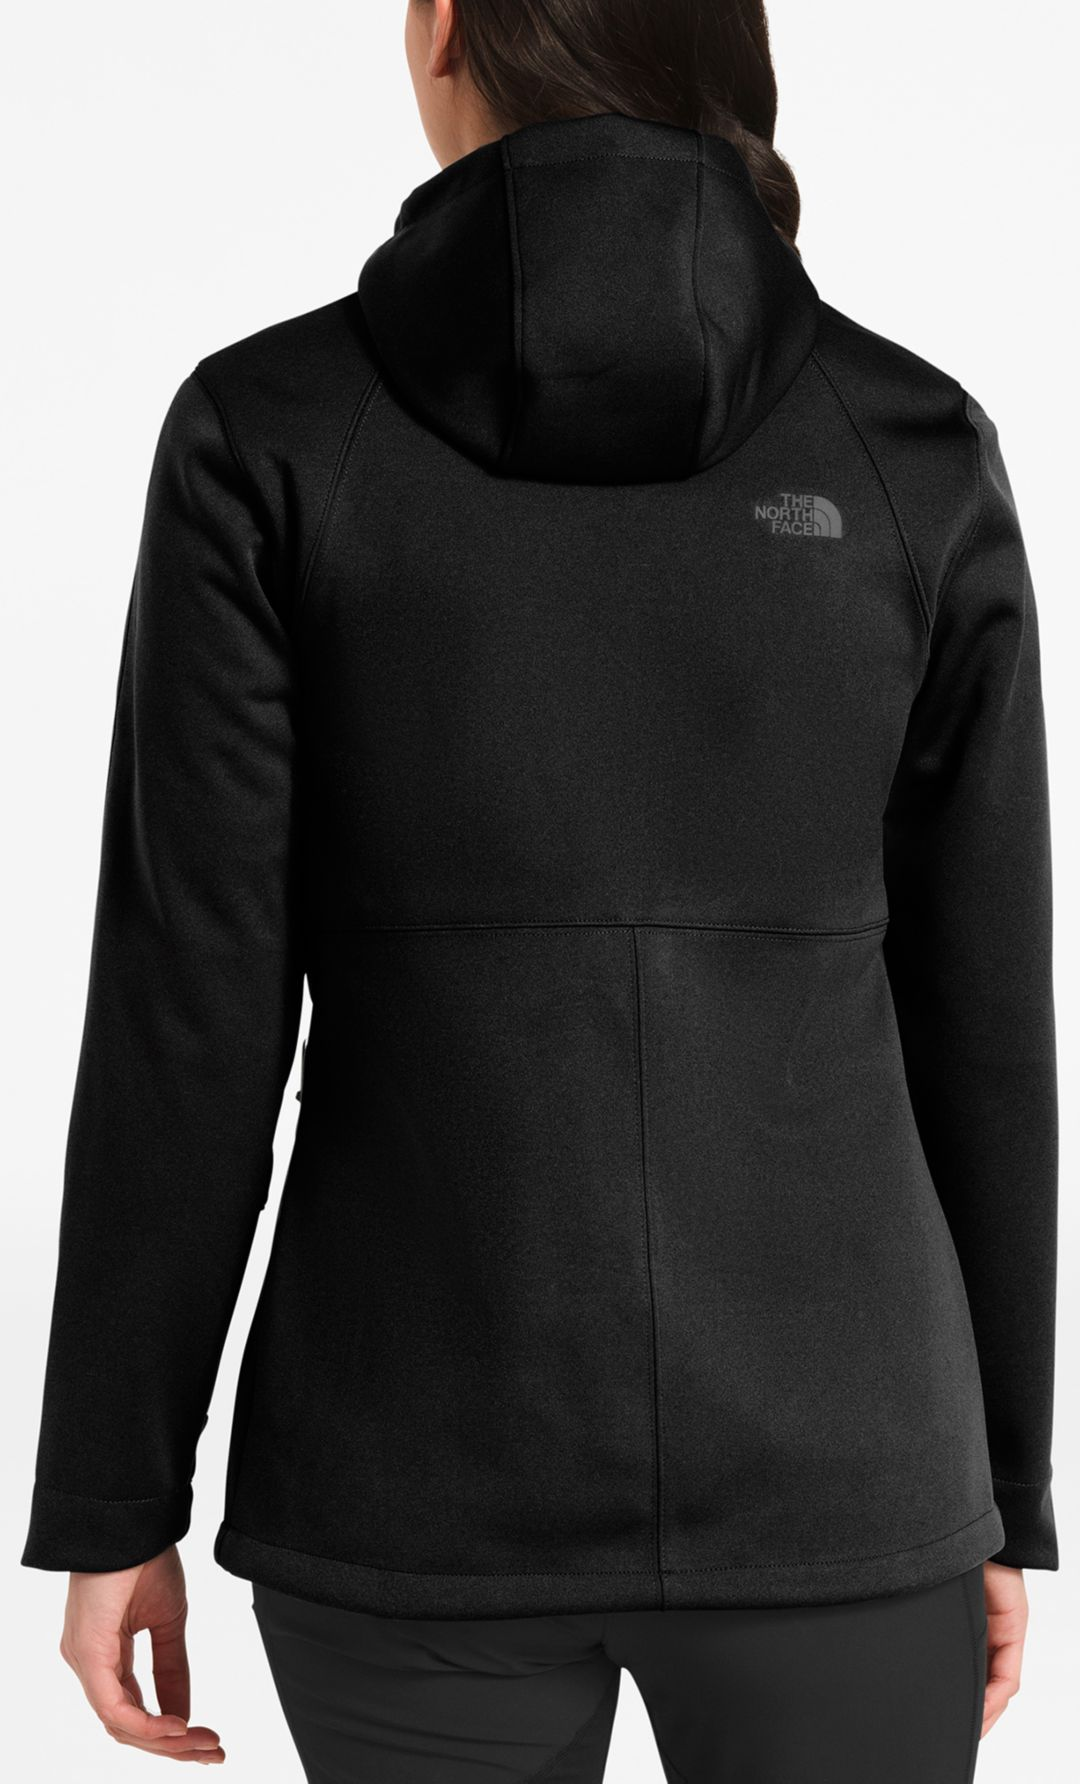 2687092fe The North Face Women's Apex Risor Soft Shell Jacket